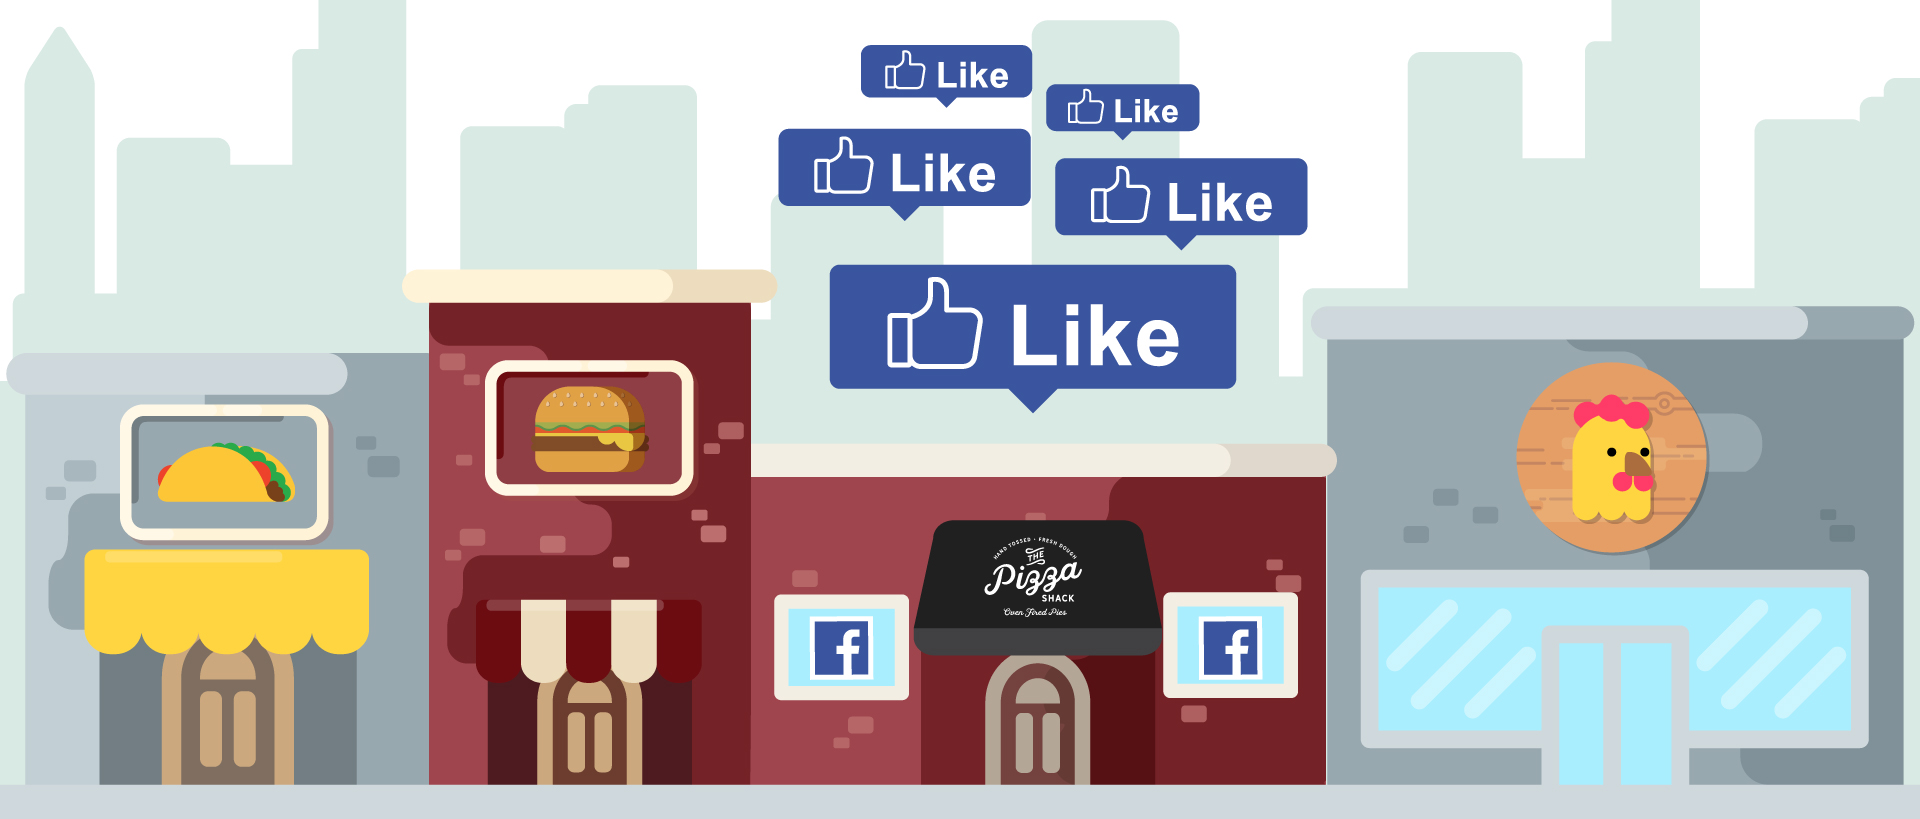 Facebook ads for restaurants how to use social media to get guests into your seats